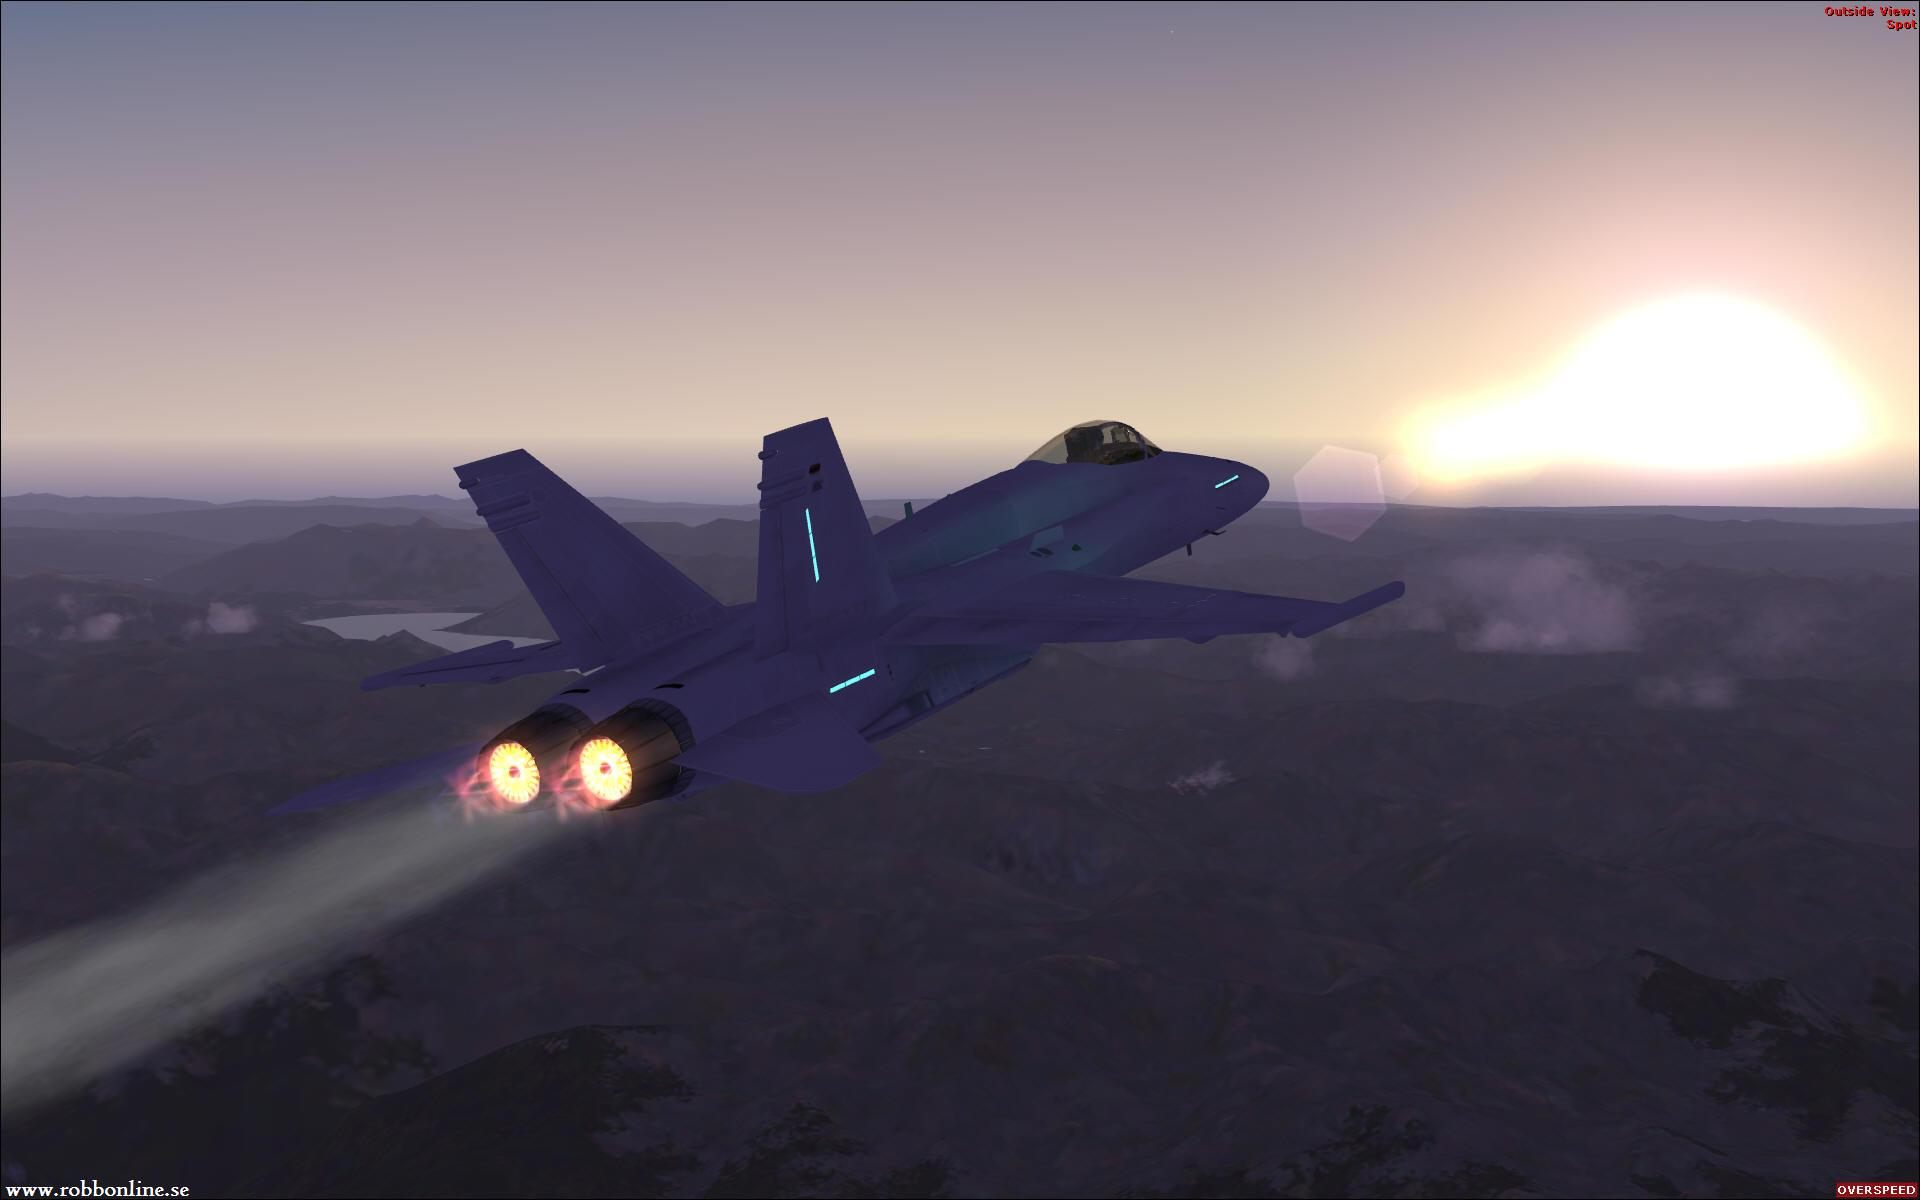 Flight Simulator wallpaper 164423 1920x1200